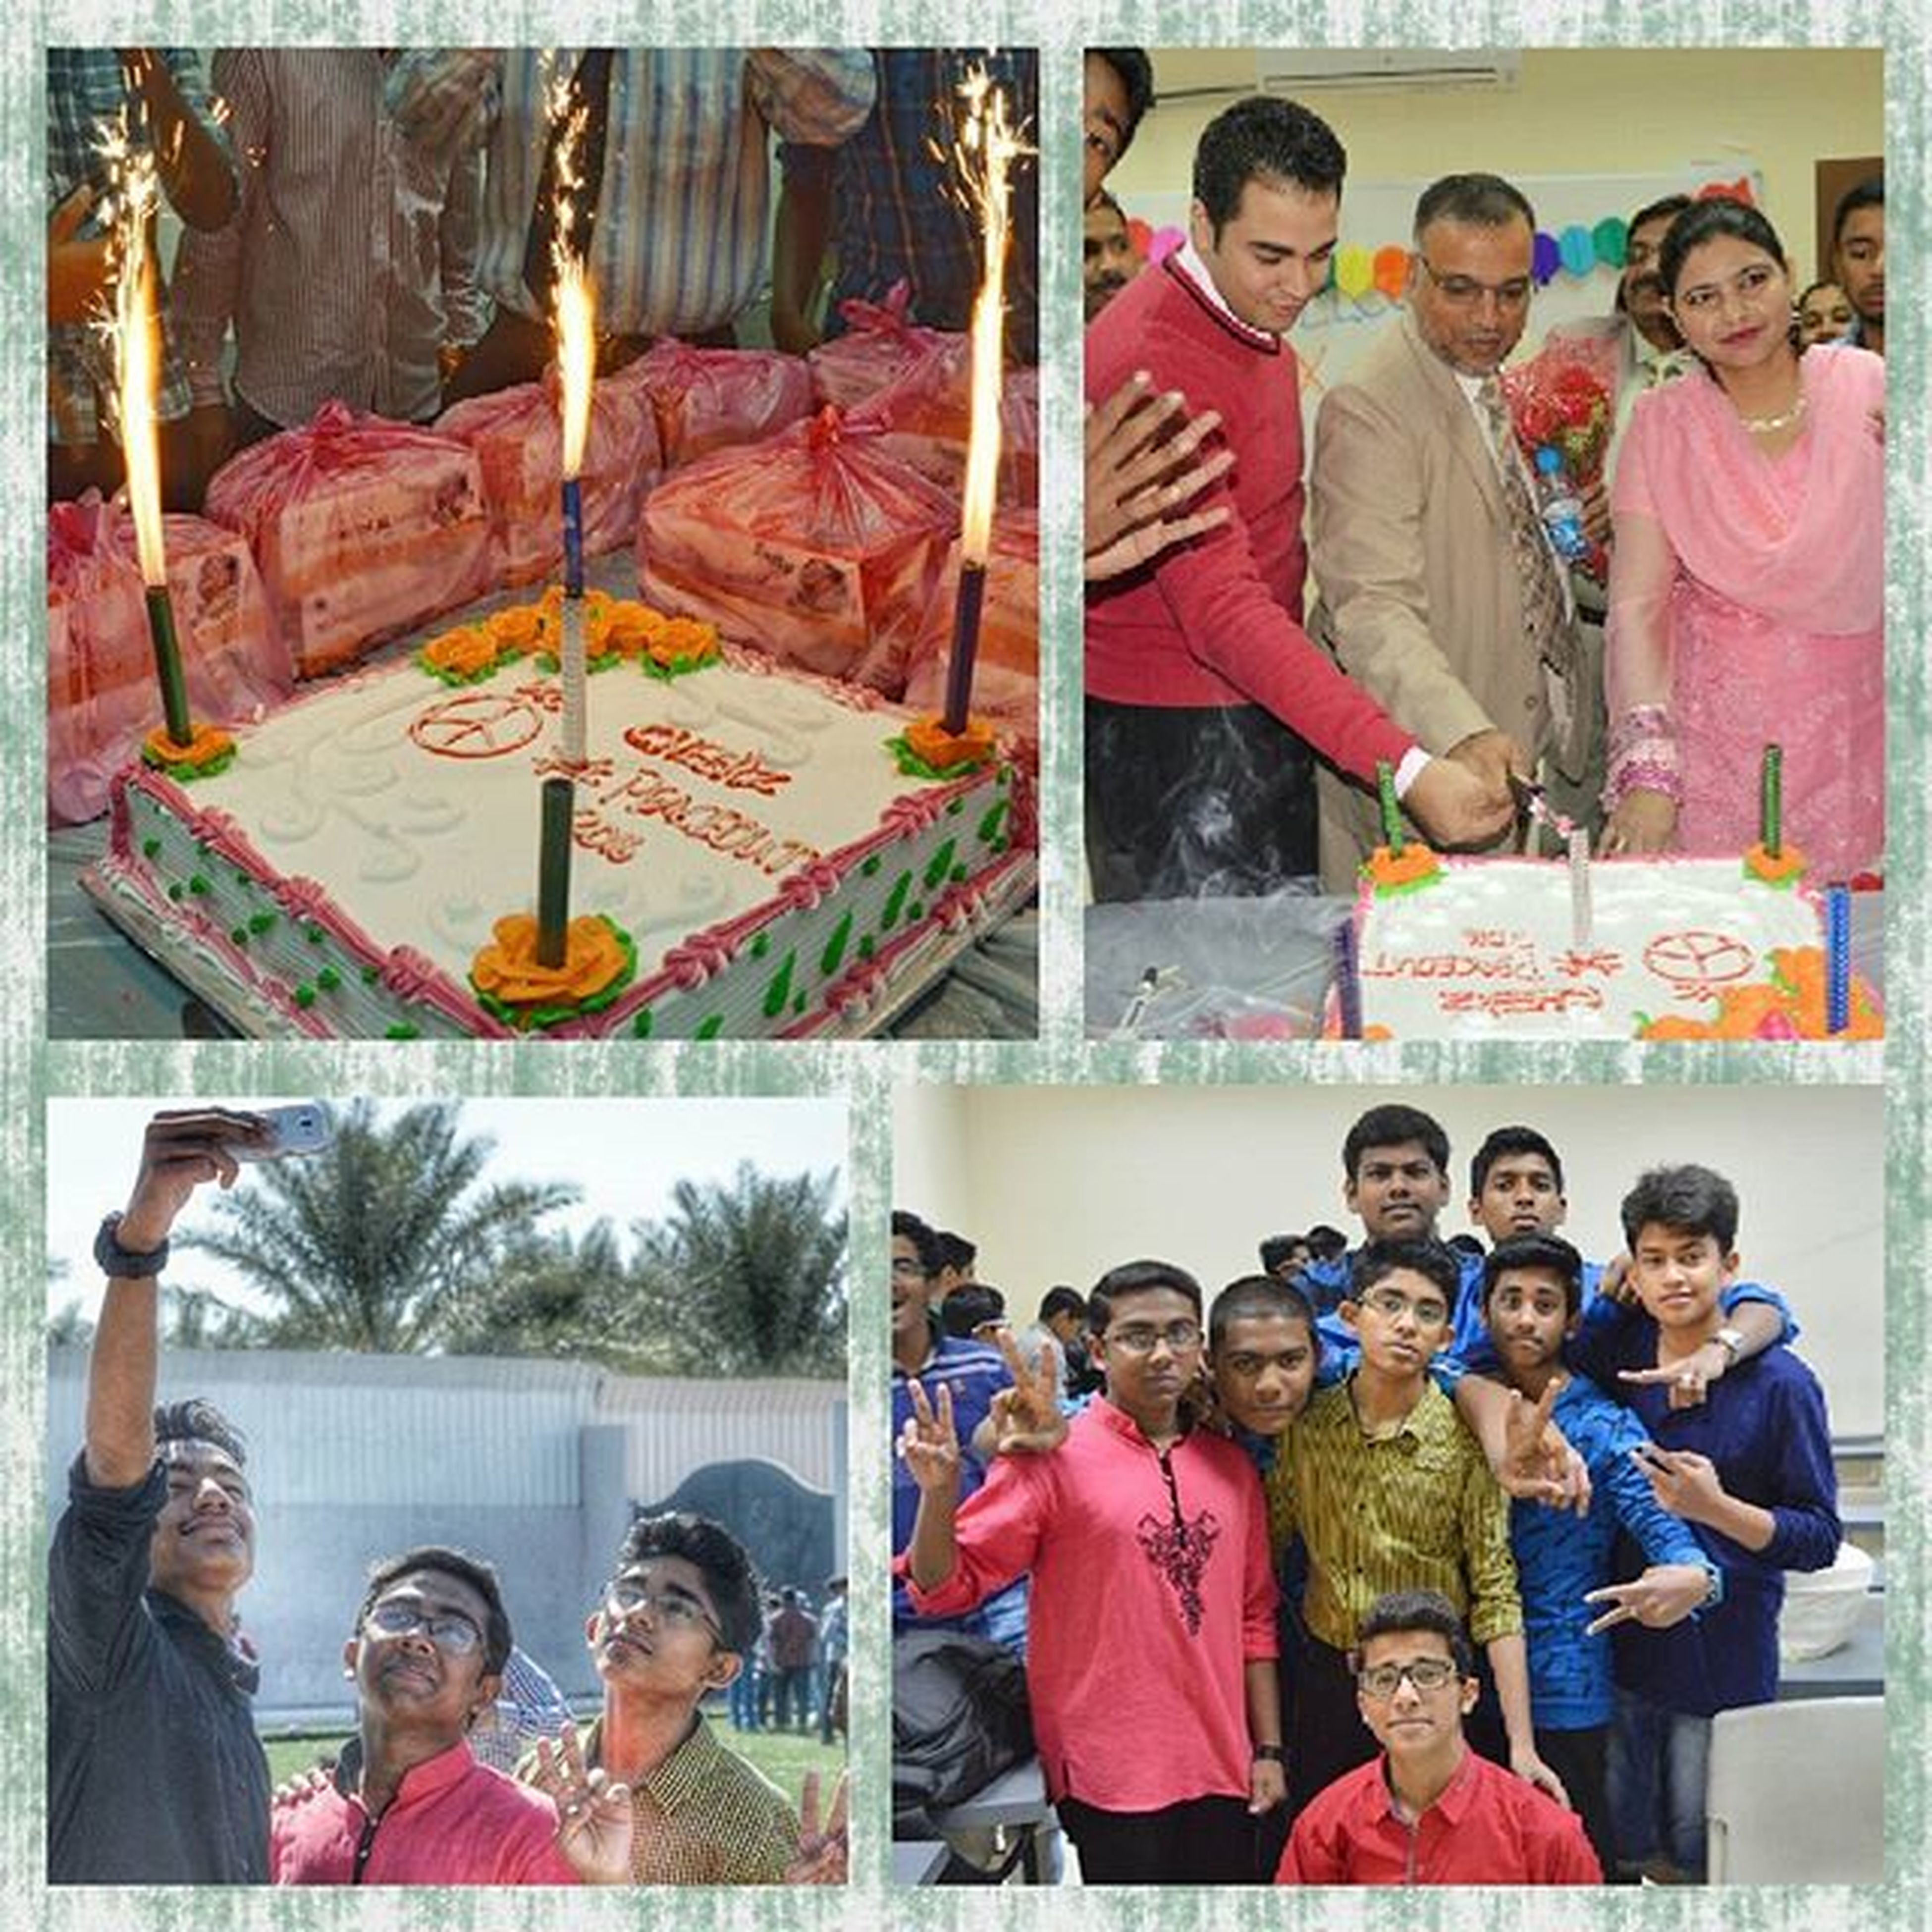 lifestyles, men, transfer print, leisure activity, casual clothing, large group of people, person, togetherness, full length, standing, auto post production filter, mixed age range, friendship, day, traditional clothing, medium group of people, sitting, love